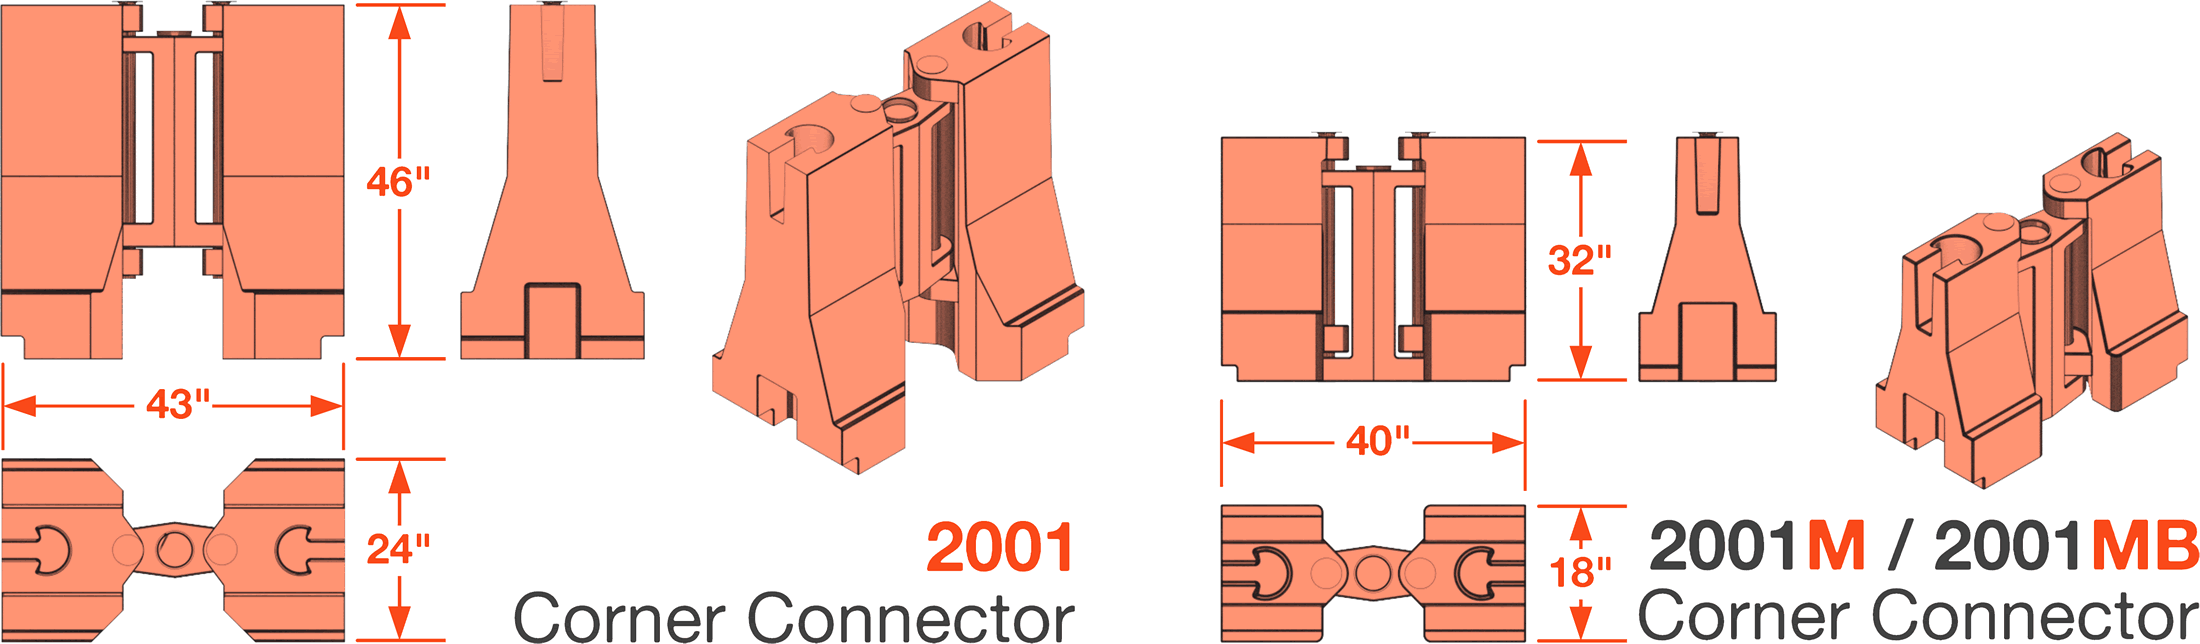 Yodock Corner Connector Dimensions